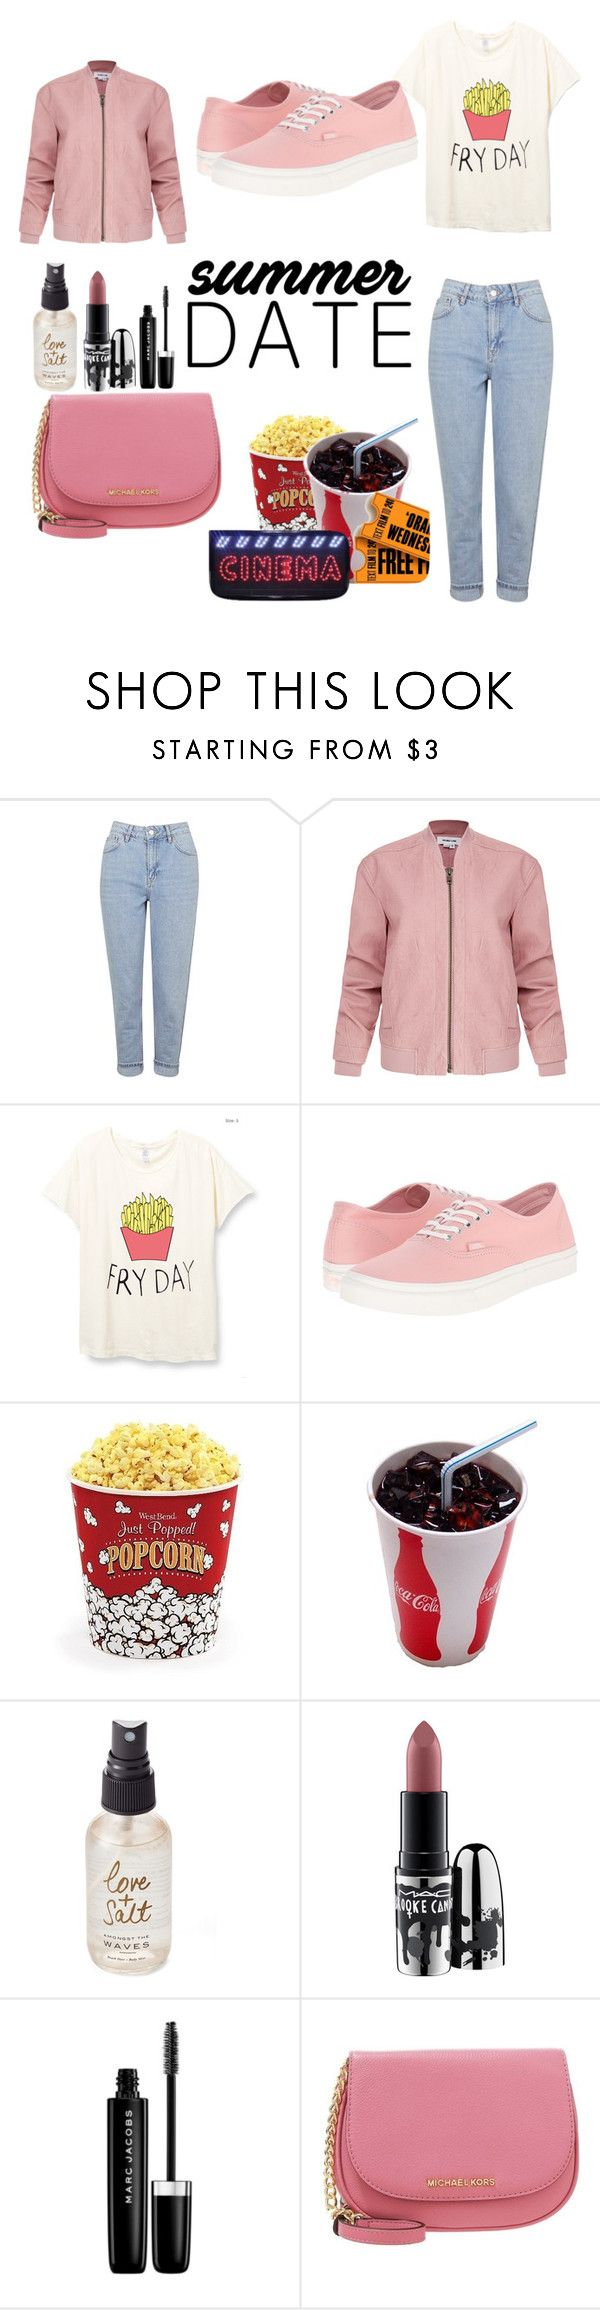 """""""Summer date:  date night"""" by zahrohusna on Polyvore featuring Topshop, Helmut Lang, Vans, West Bend, Olivine, MAC Cosmetics, Marc Jacobs, DateNight, drivein and summerdate"""